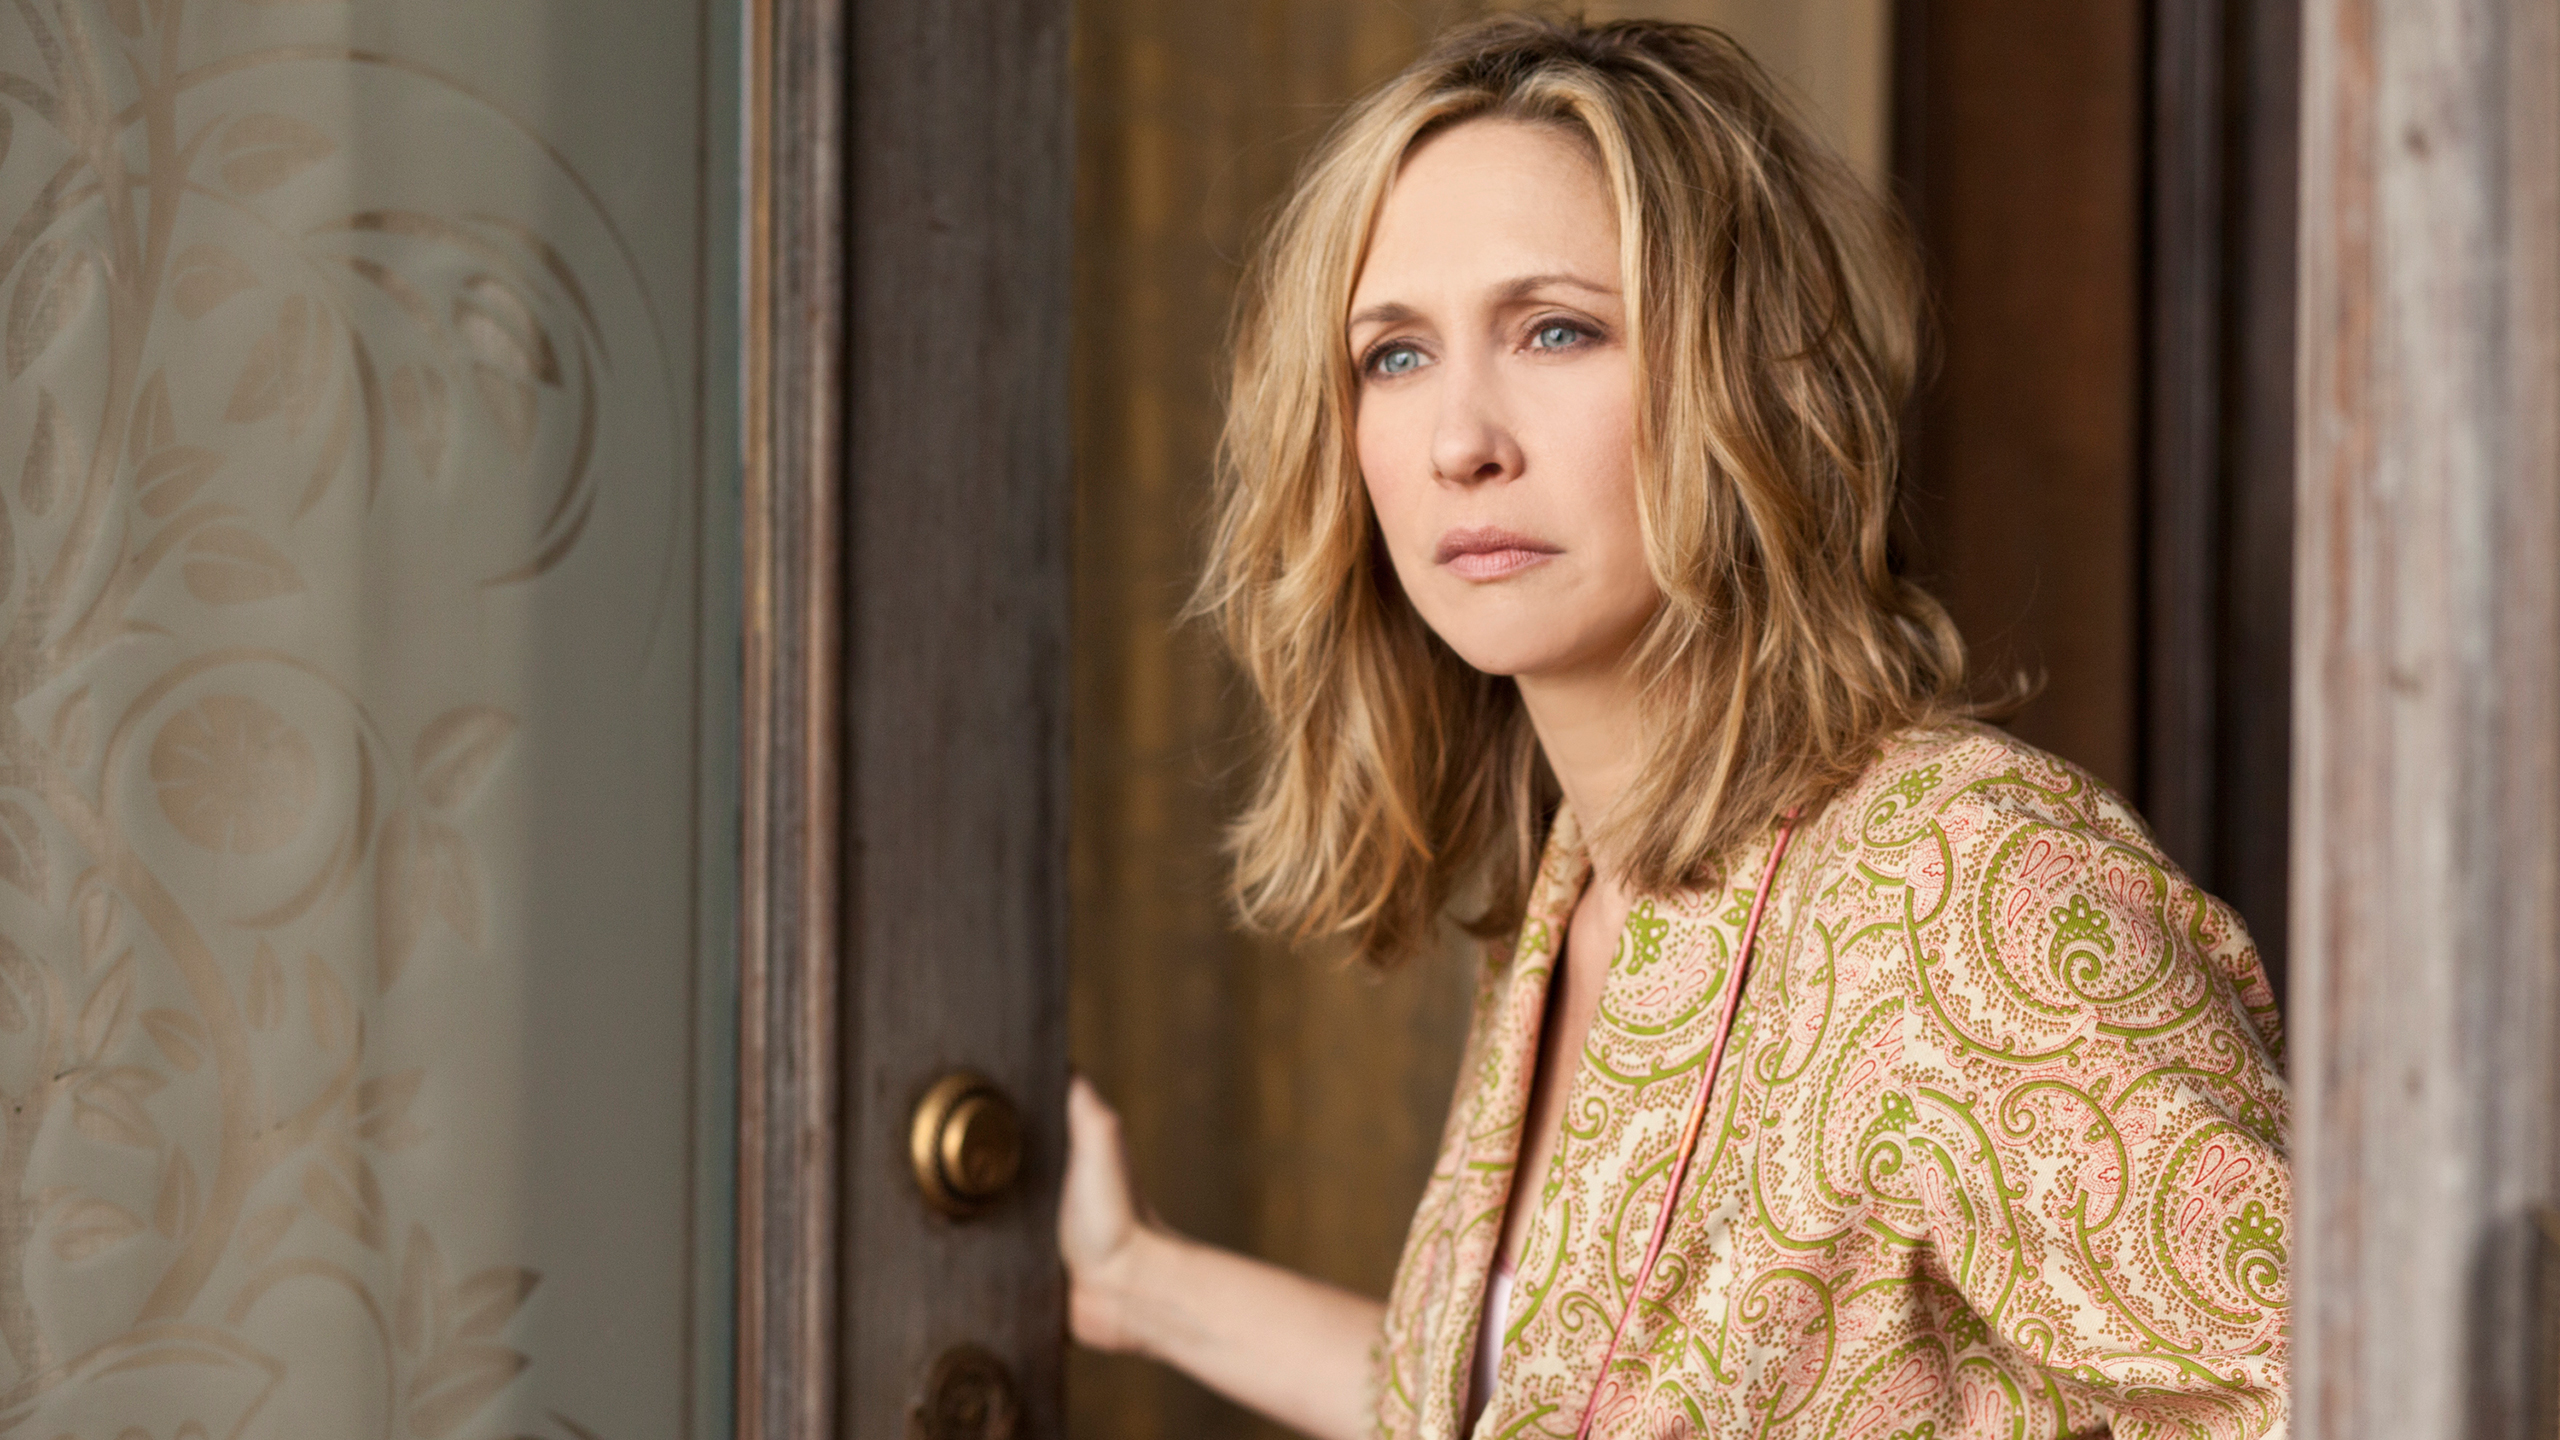 File:00-norma-bates-spies-an-unwelcome-guest.jpg